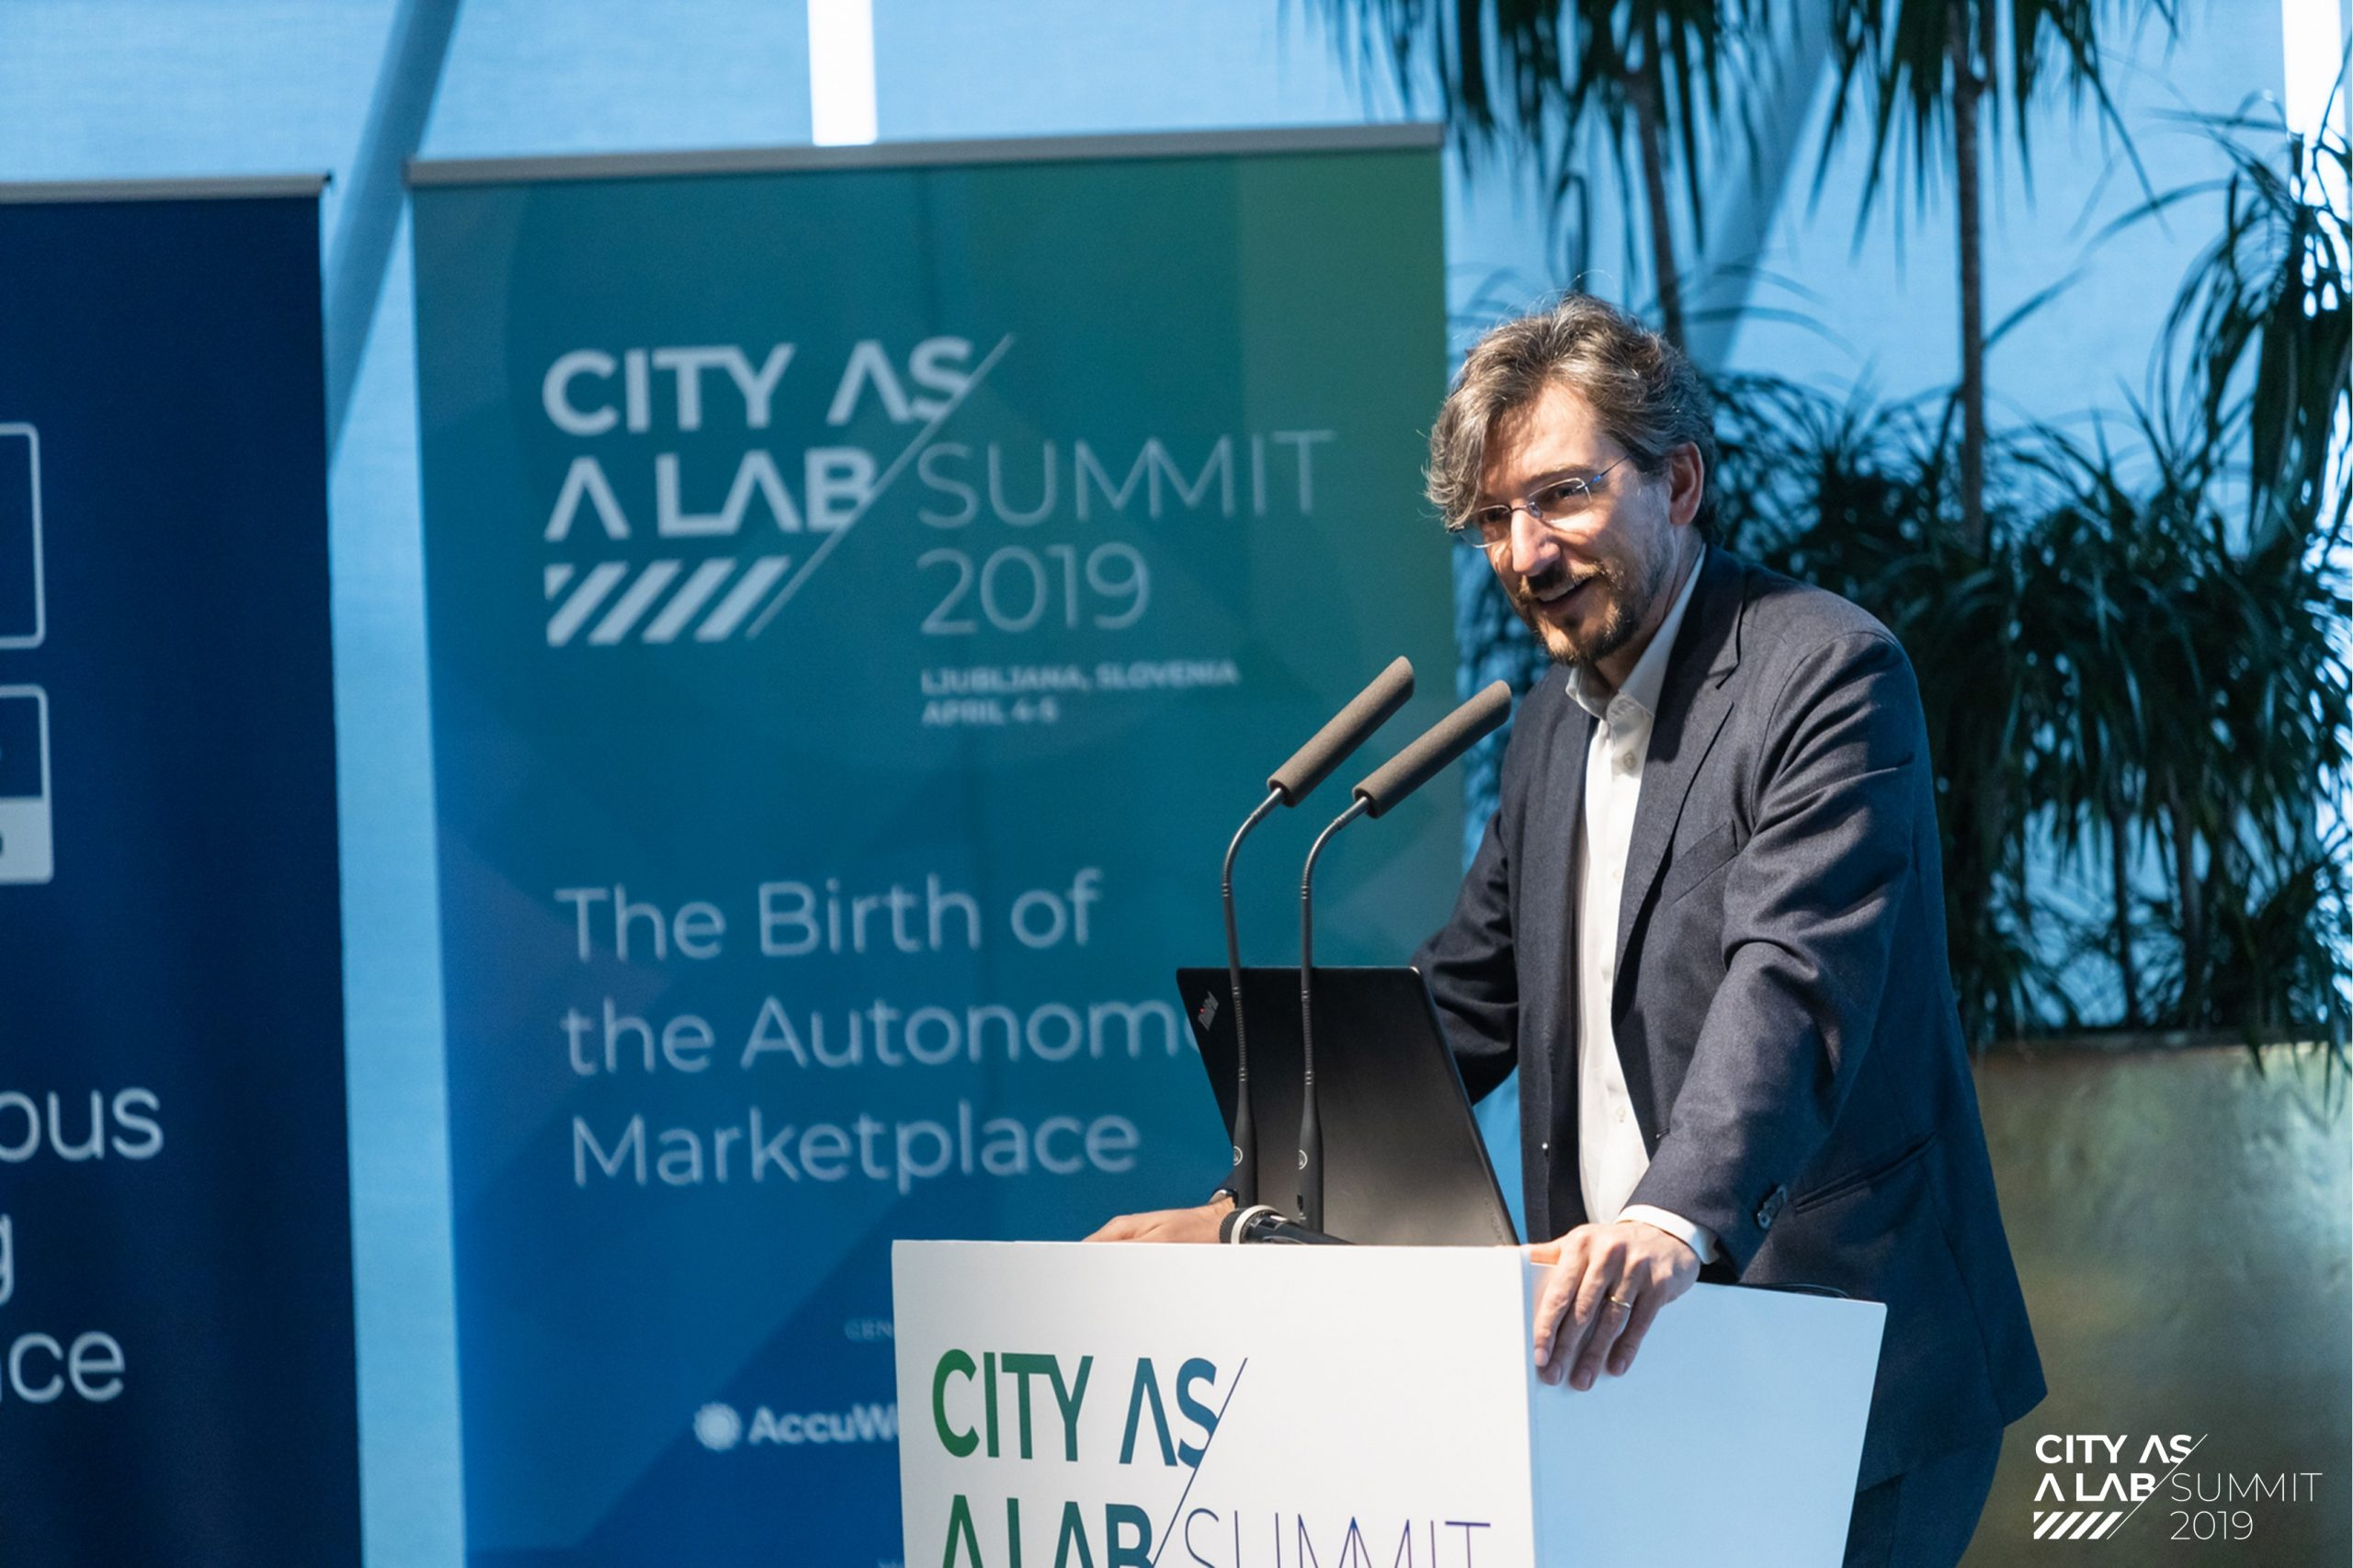 Luigi Ksawery Luca', City as a Lab Summit 2019